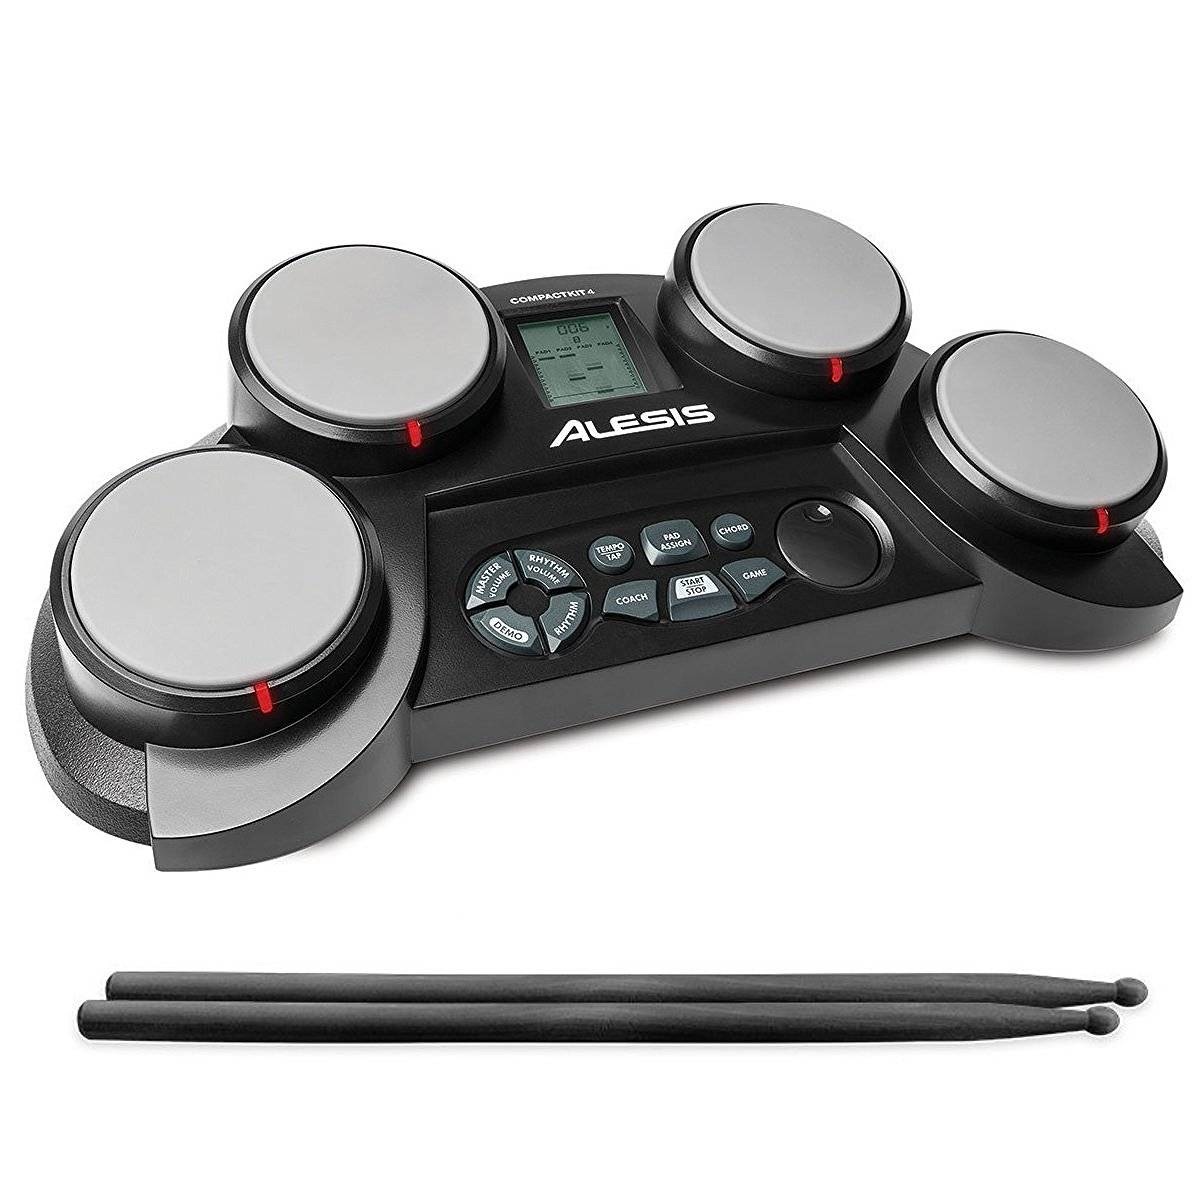 This is how the Alesis Compact Kit performed in my best electronic drum pad review